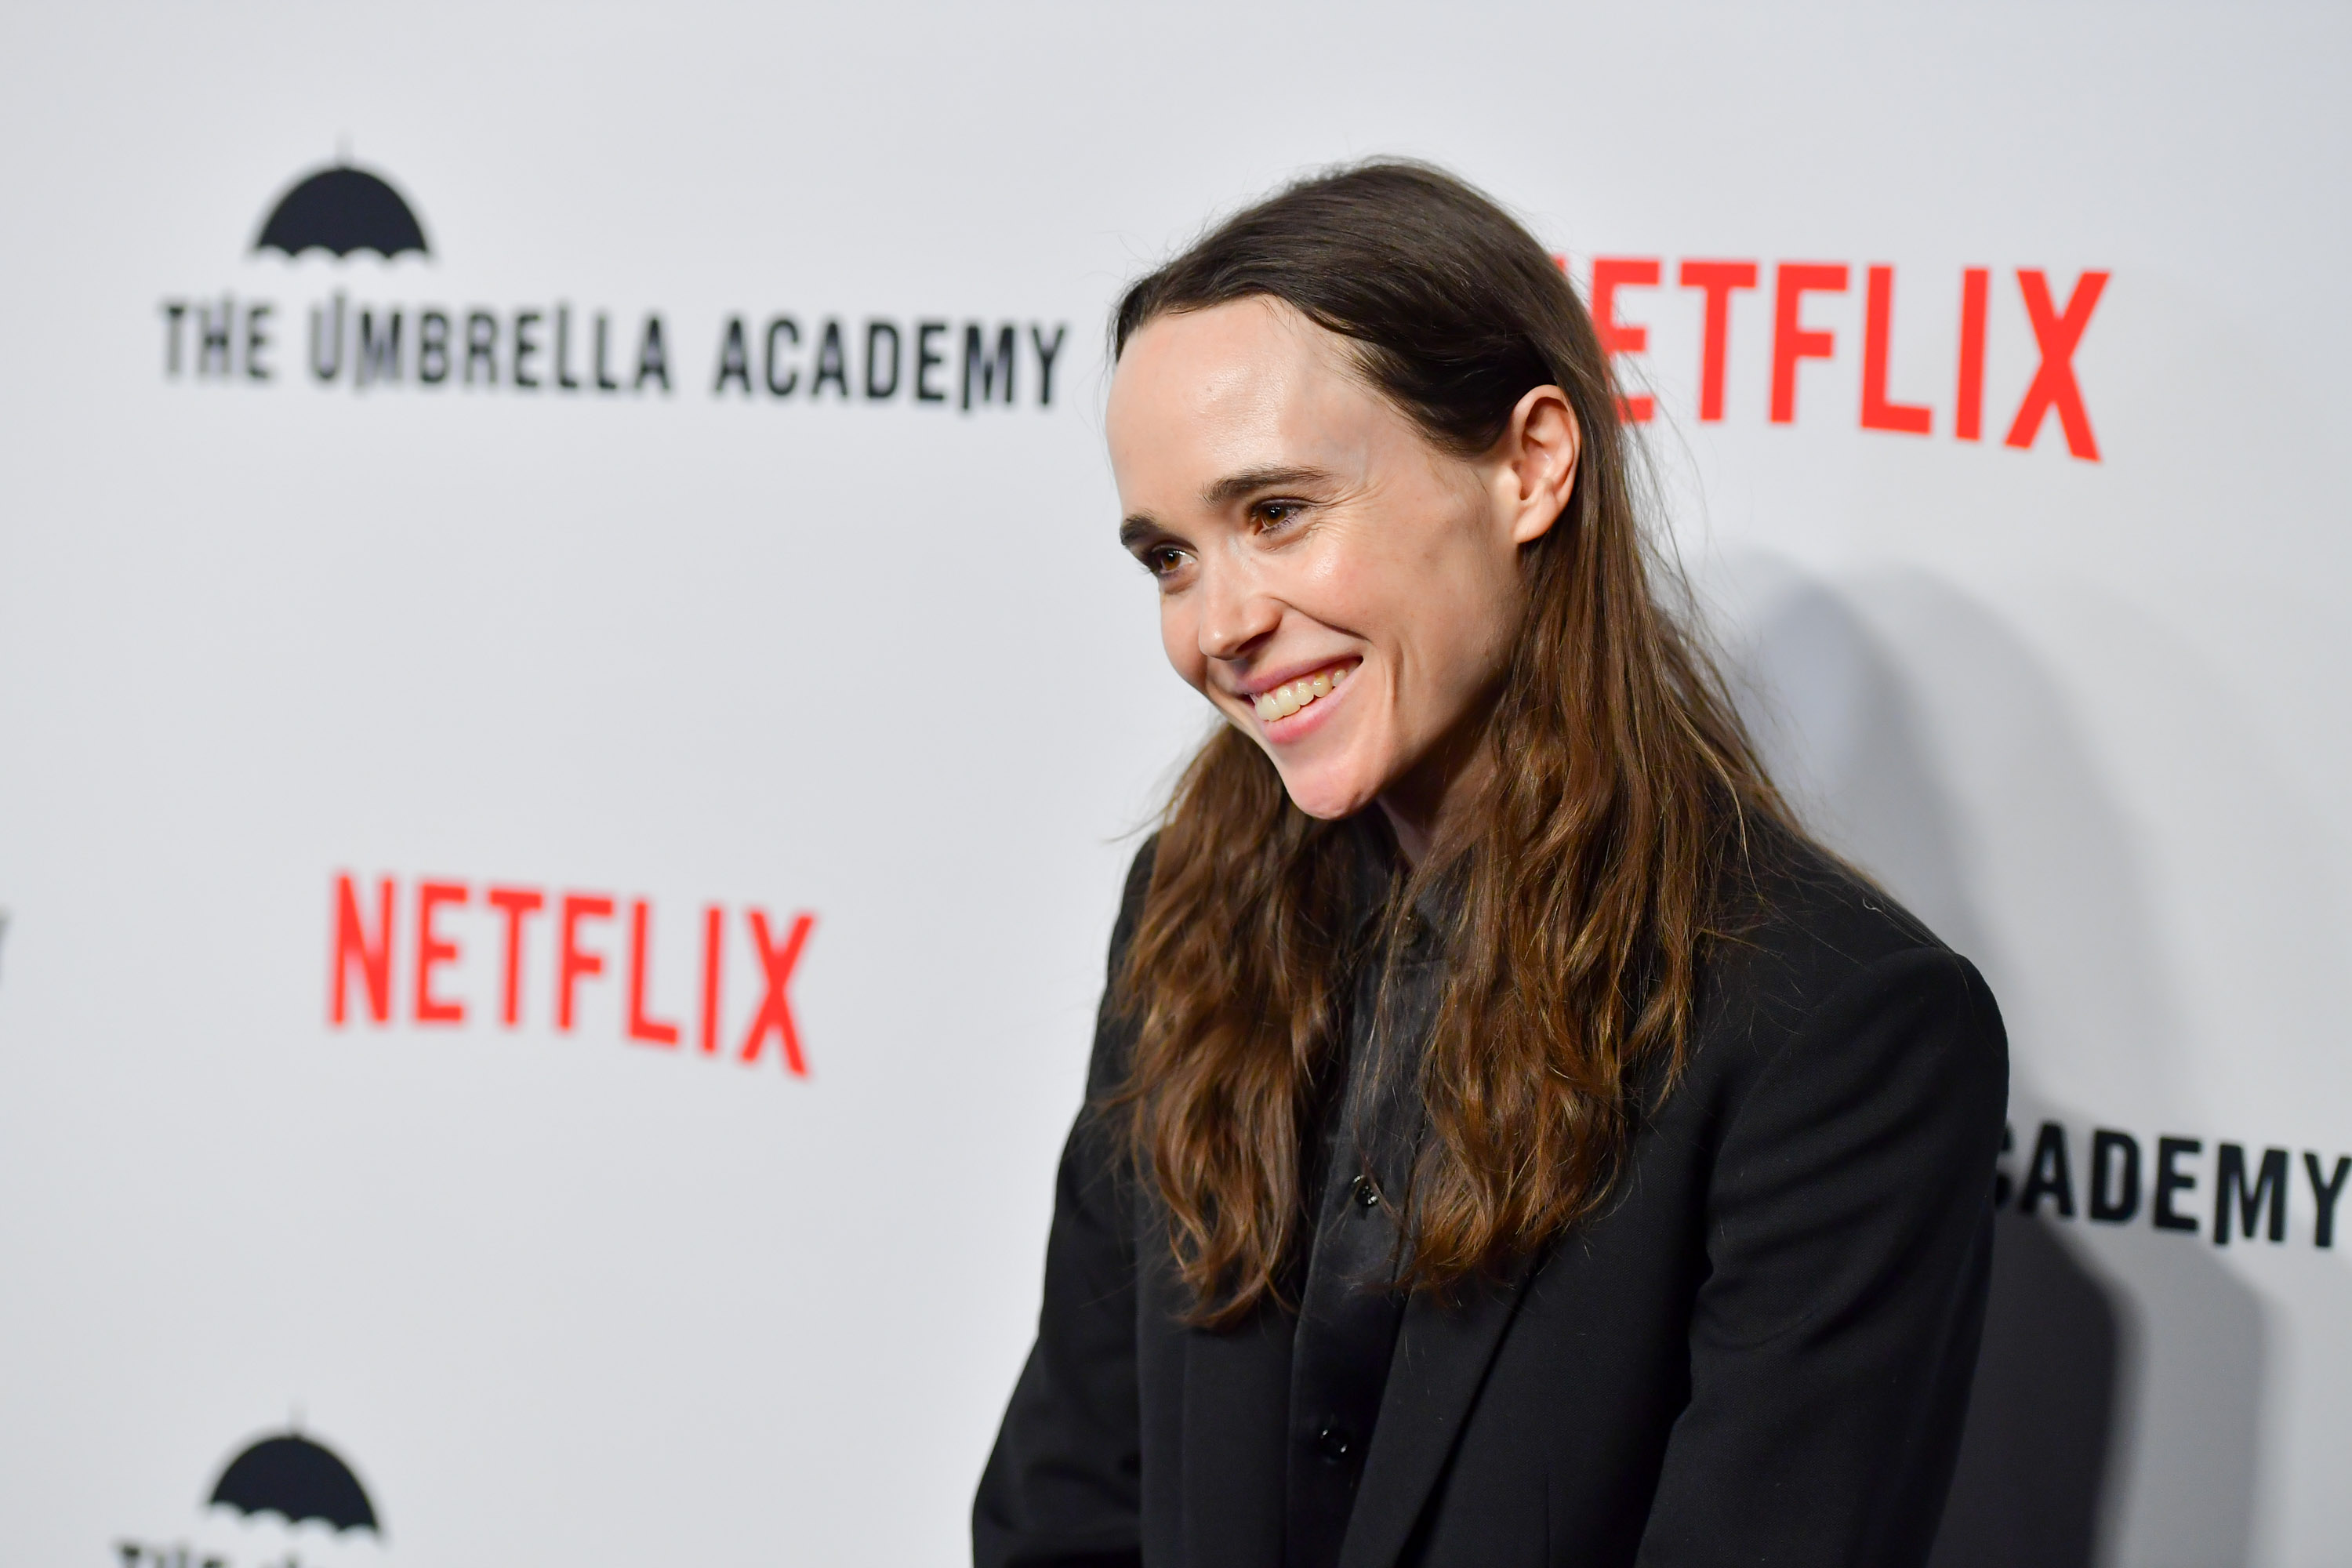 Ellen Page On Coming Out at 27 and Fighting for LGBTQ Rights